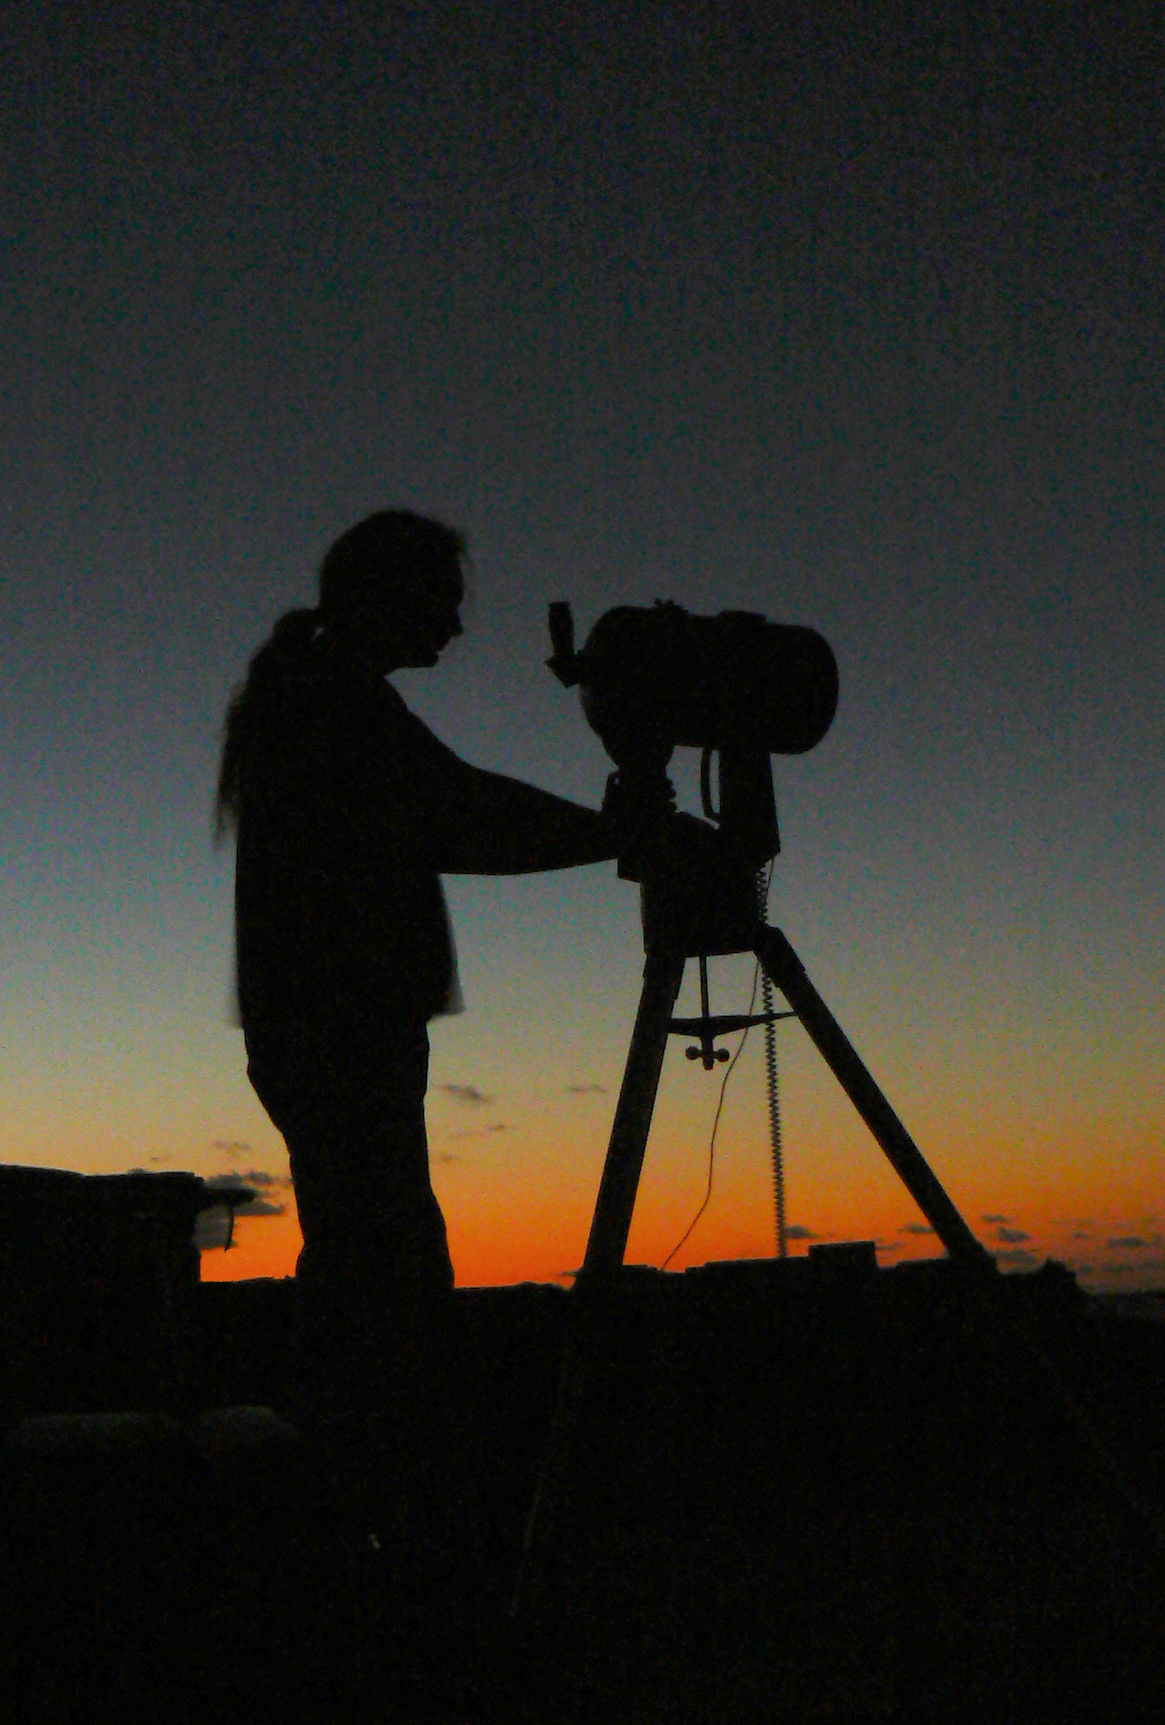 Member of Basingstoke Astronomical Society has his eyes on the sky.  Credit: Dstl